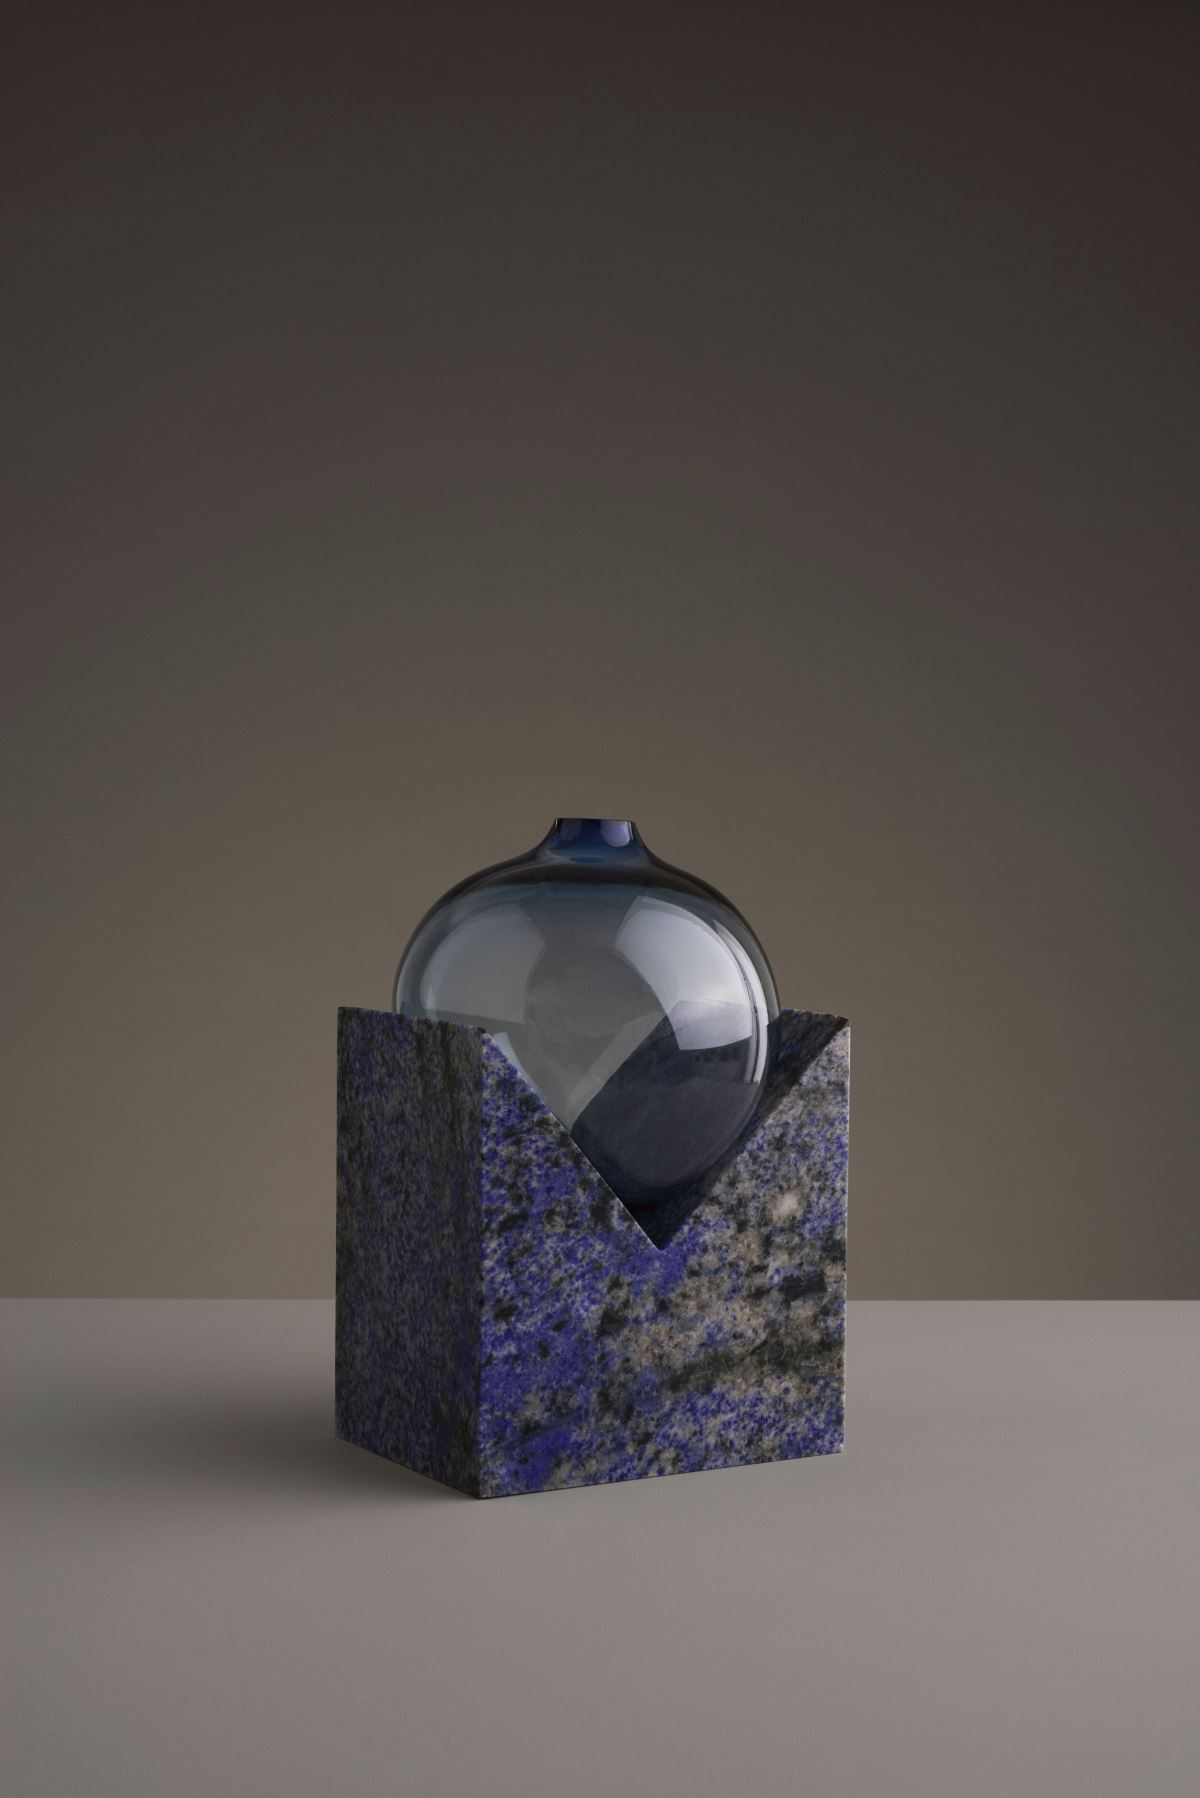 Blue glass and stone vase from Studio E.O